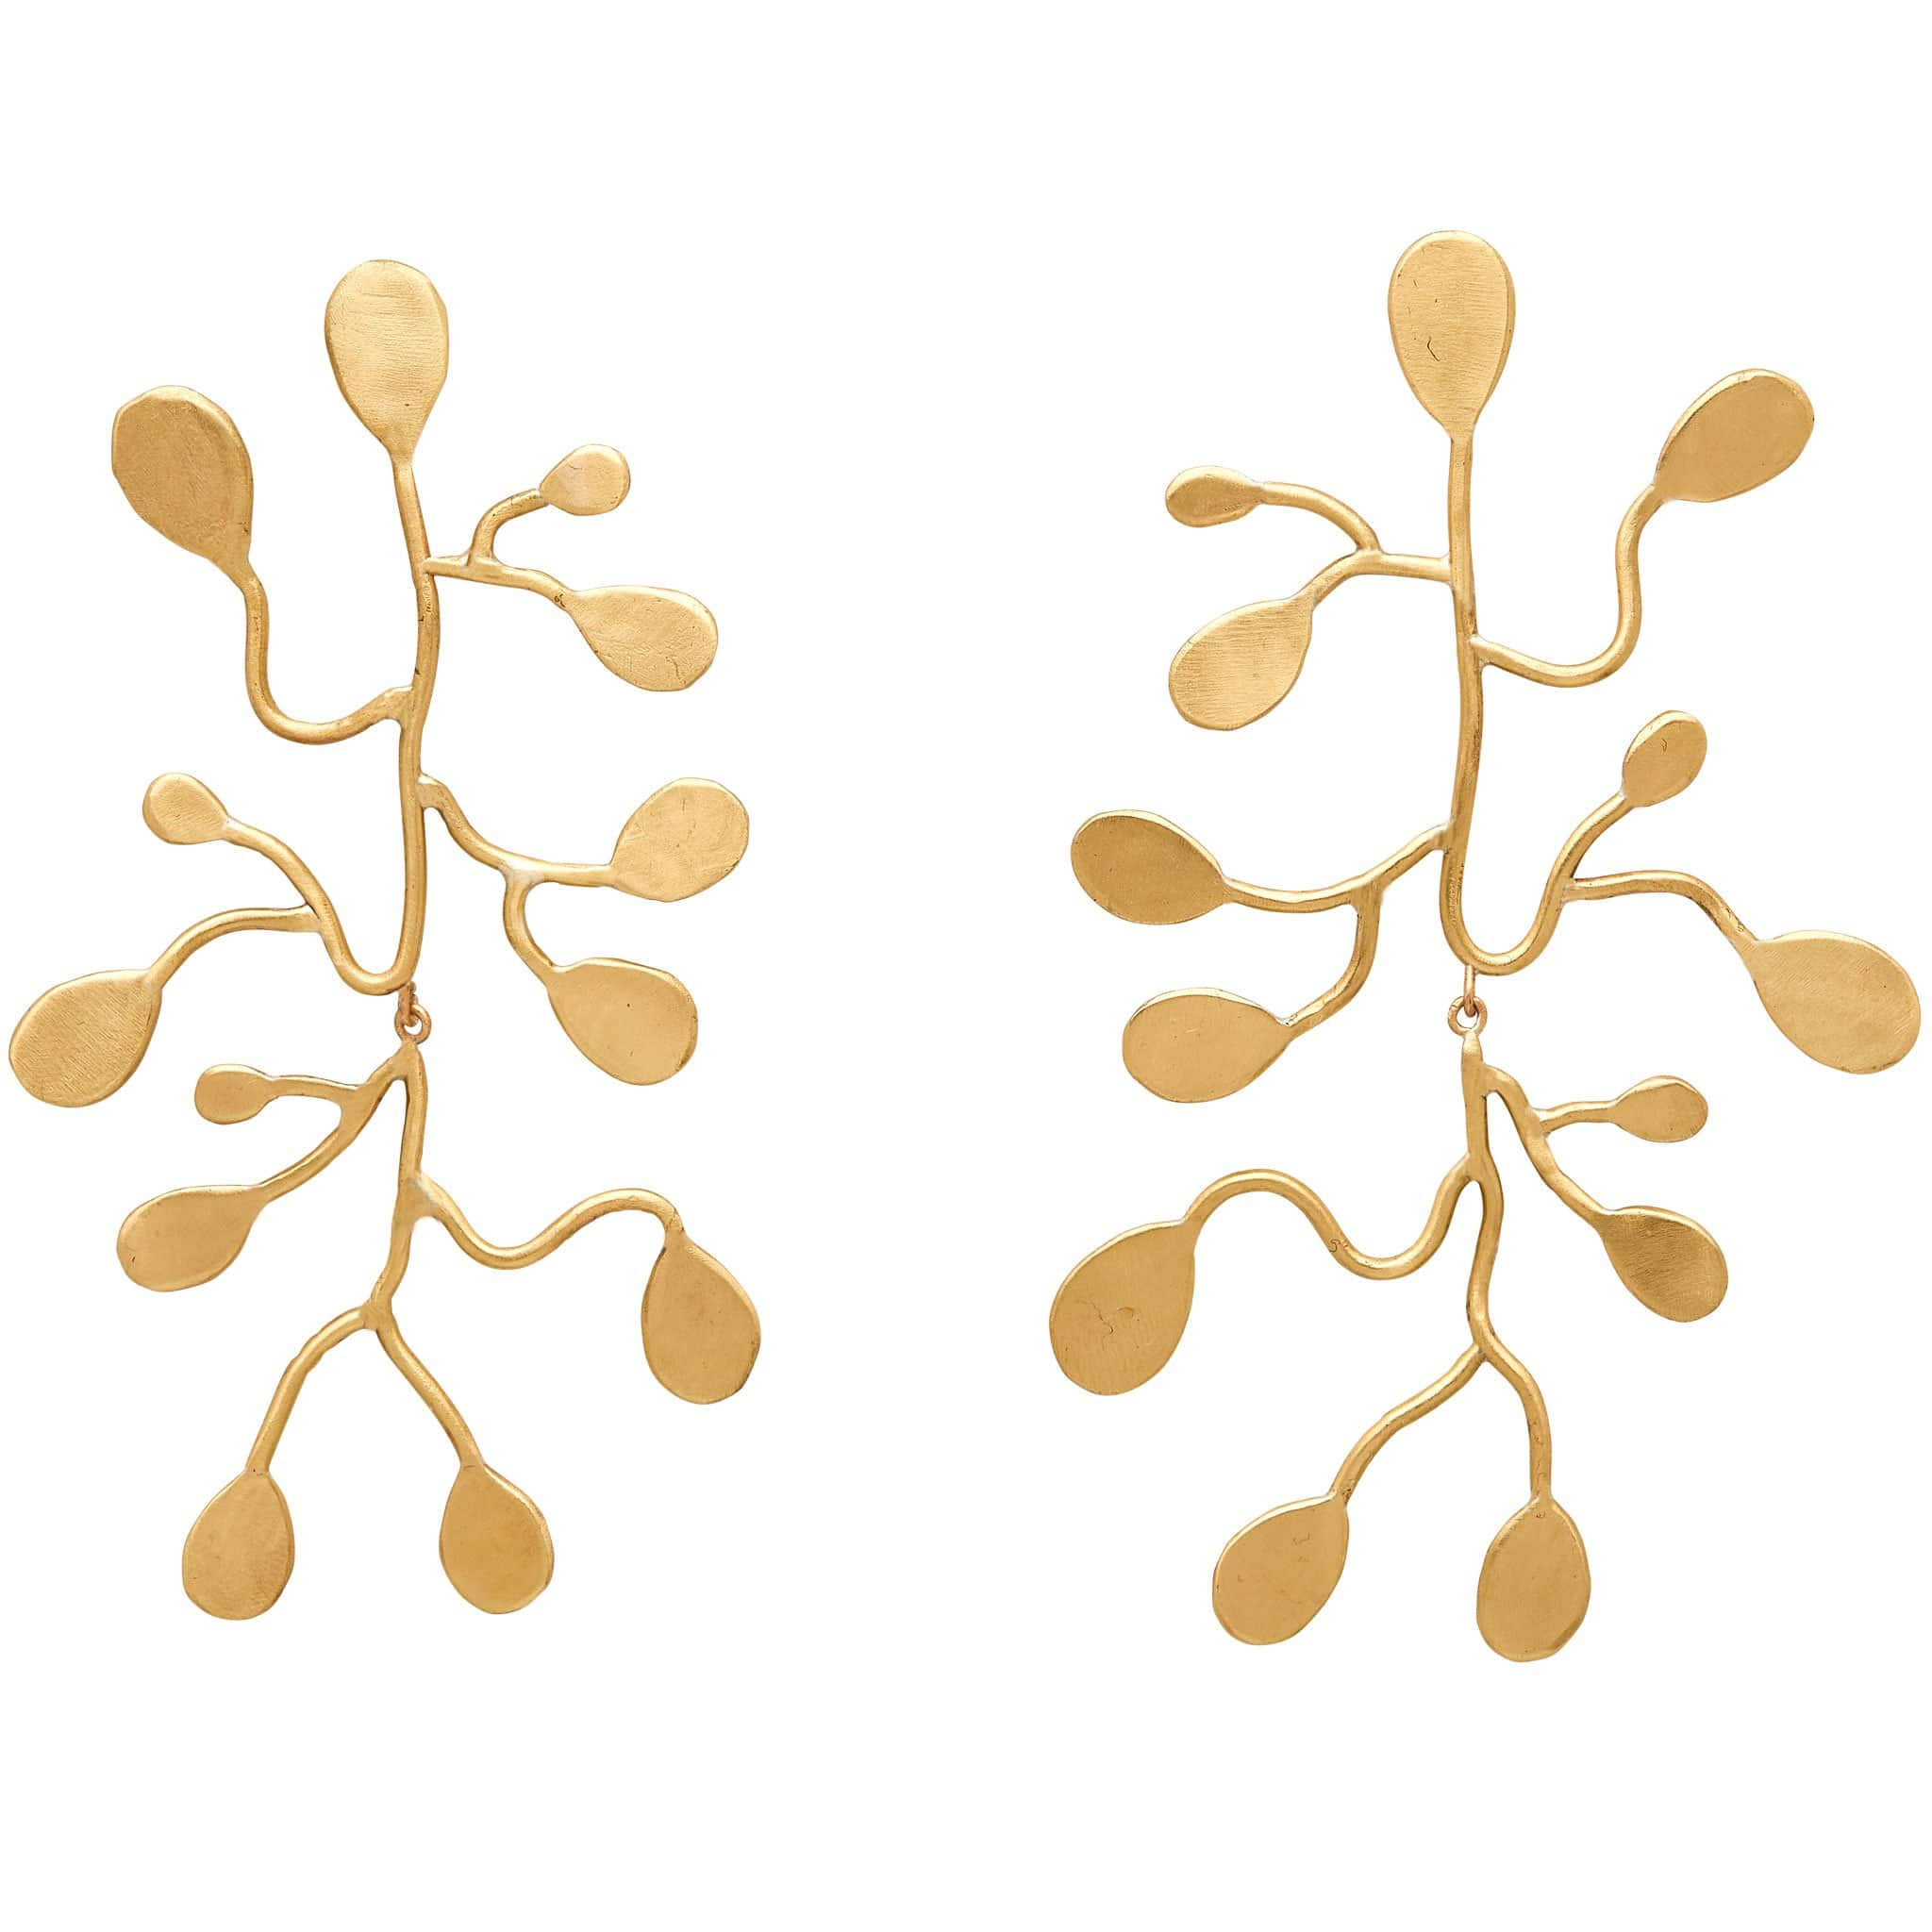 Julie Cohn Design Bronze Passion Vine Earrings.